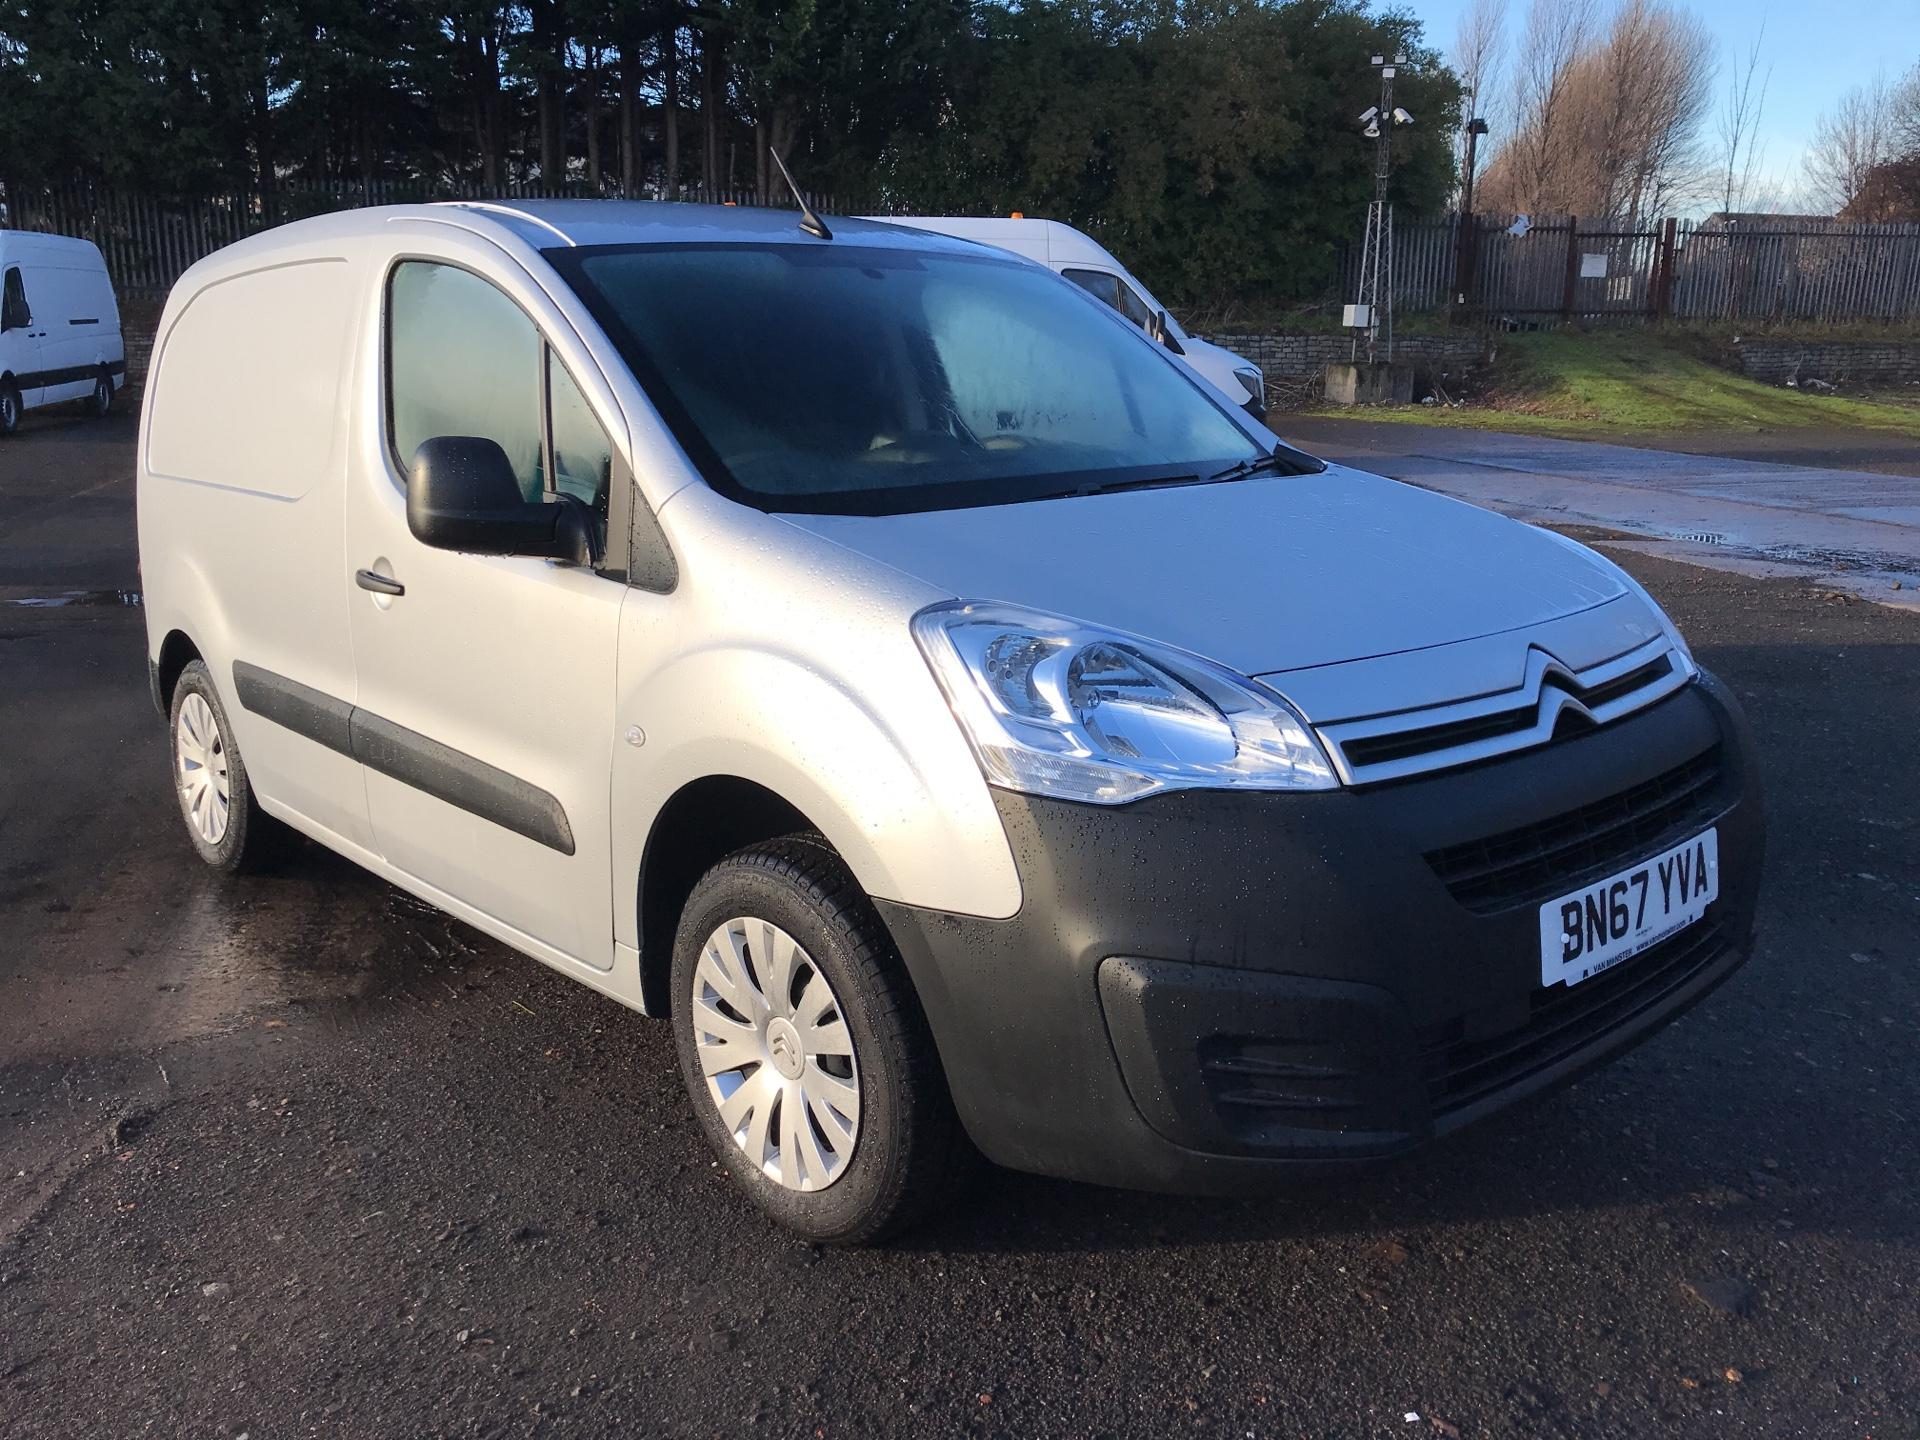 2017 Citroen Berlingo L1 DIESEL 1.6 HDI 625KG ENTERPRISE 75PS EURO 4/5 (BN67YVA)